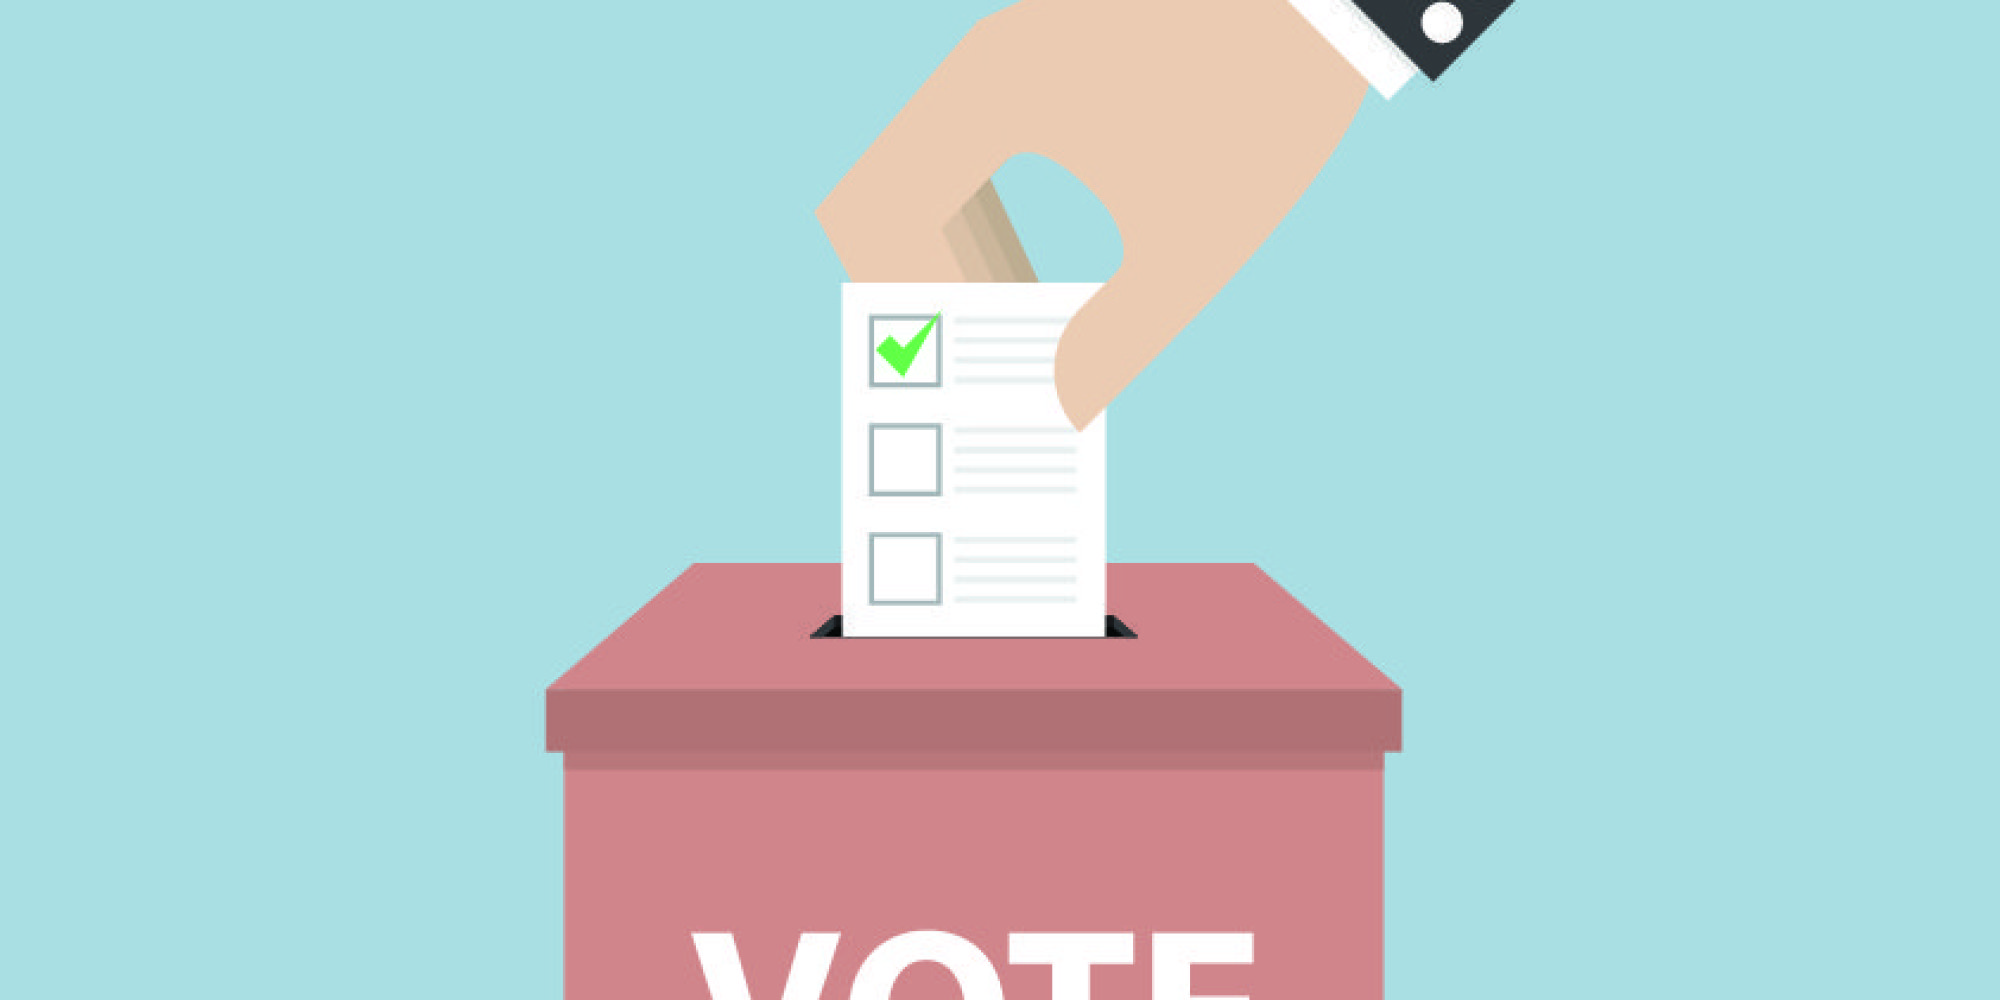 why americans should vote Essay on why americans should vote americans and voting there is value in having and exercising the right to vote  americans today have developed a mindset that their vote does not make a difference, and that voicing out their opinions is a waste of time.